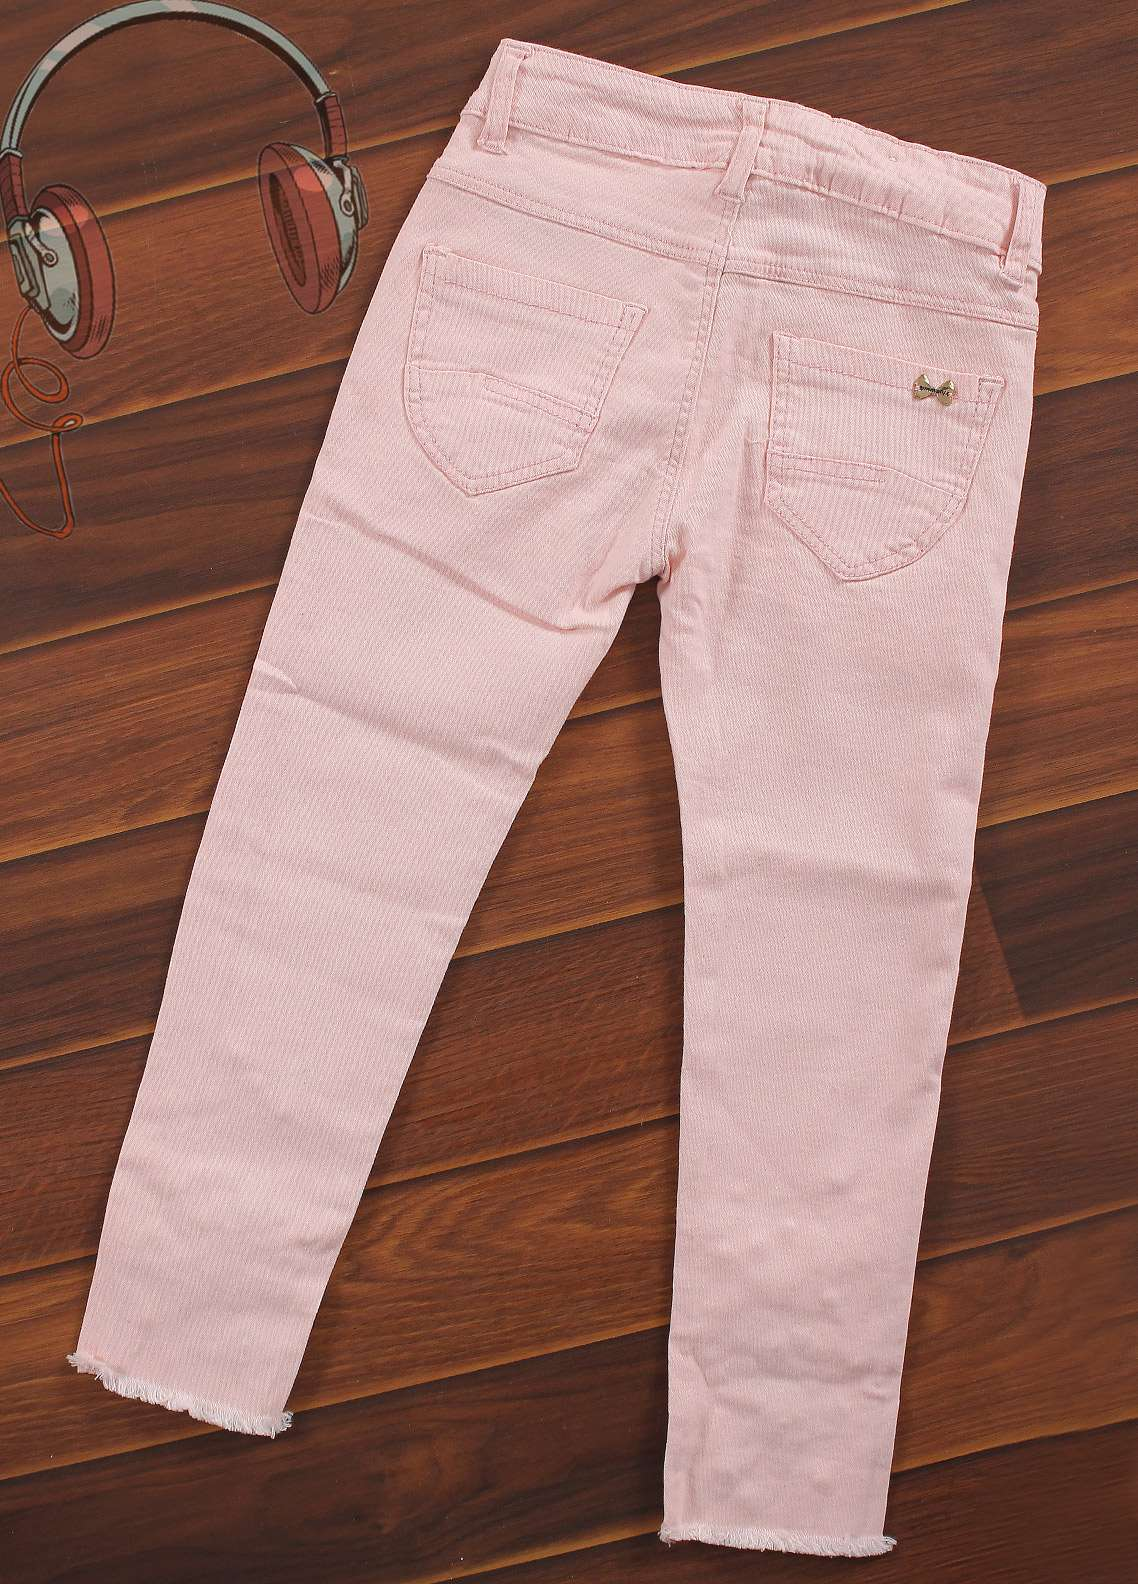 Sanaulla Exclusive Range Cotton Casual Girls Pants -  8283-Pink